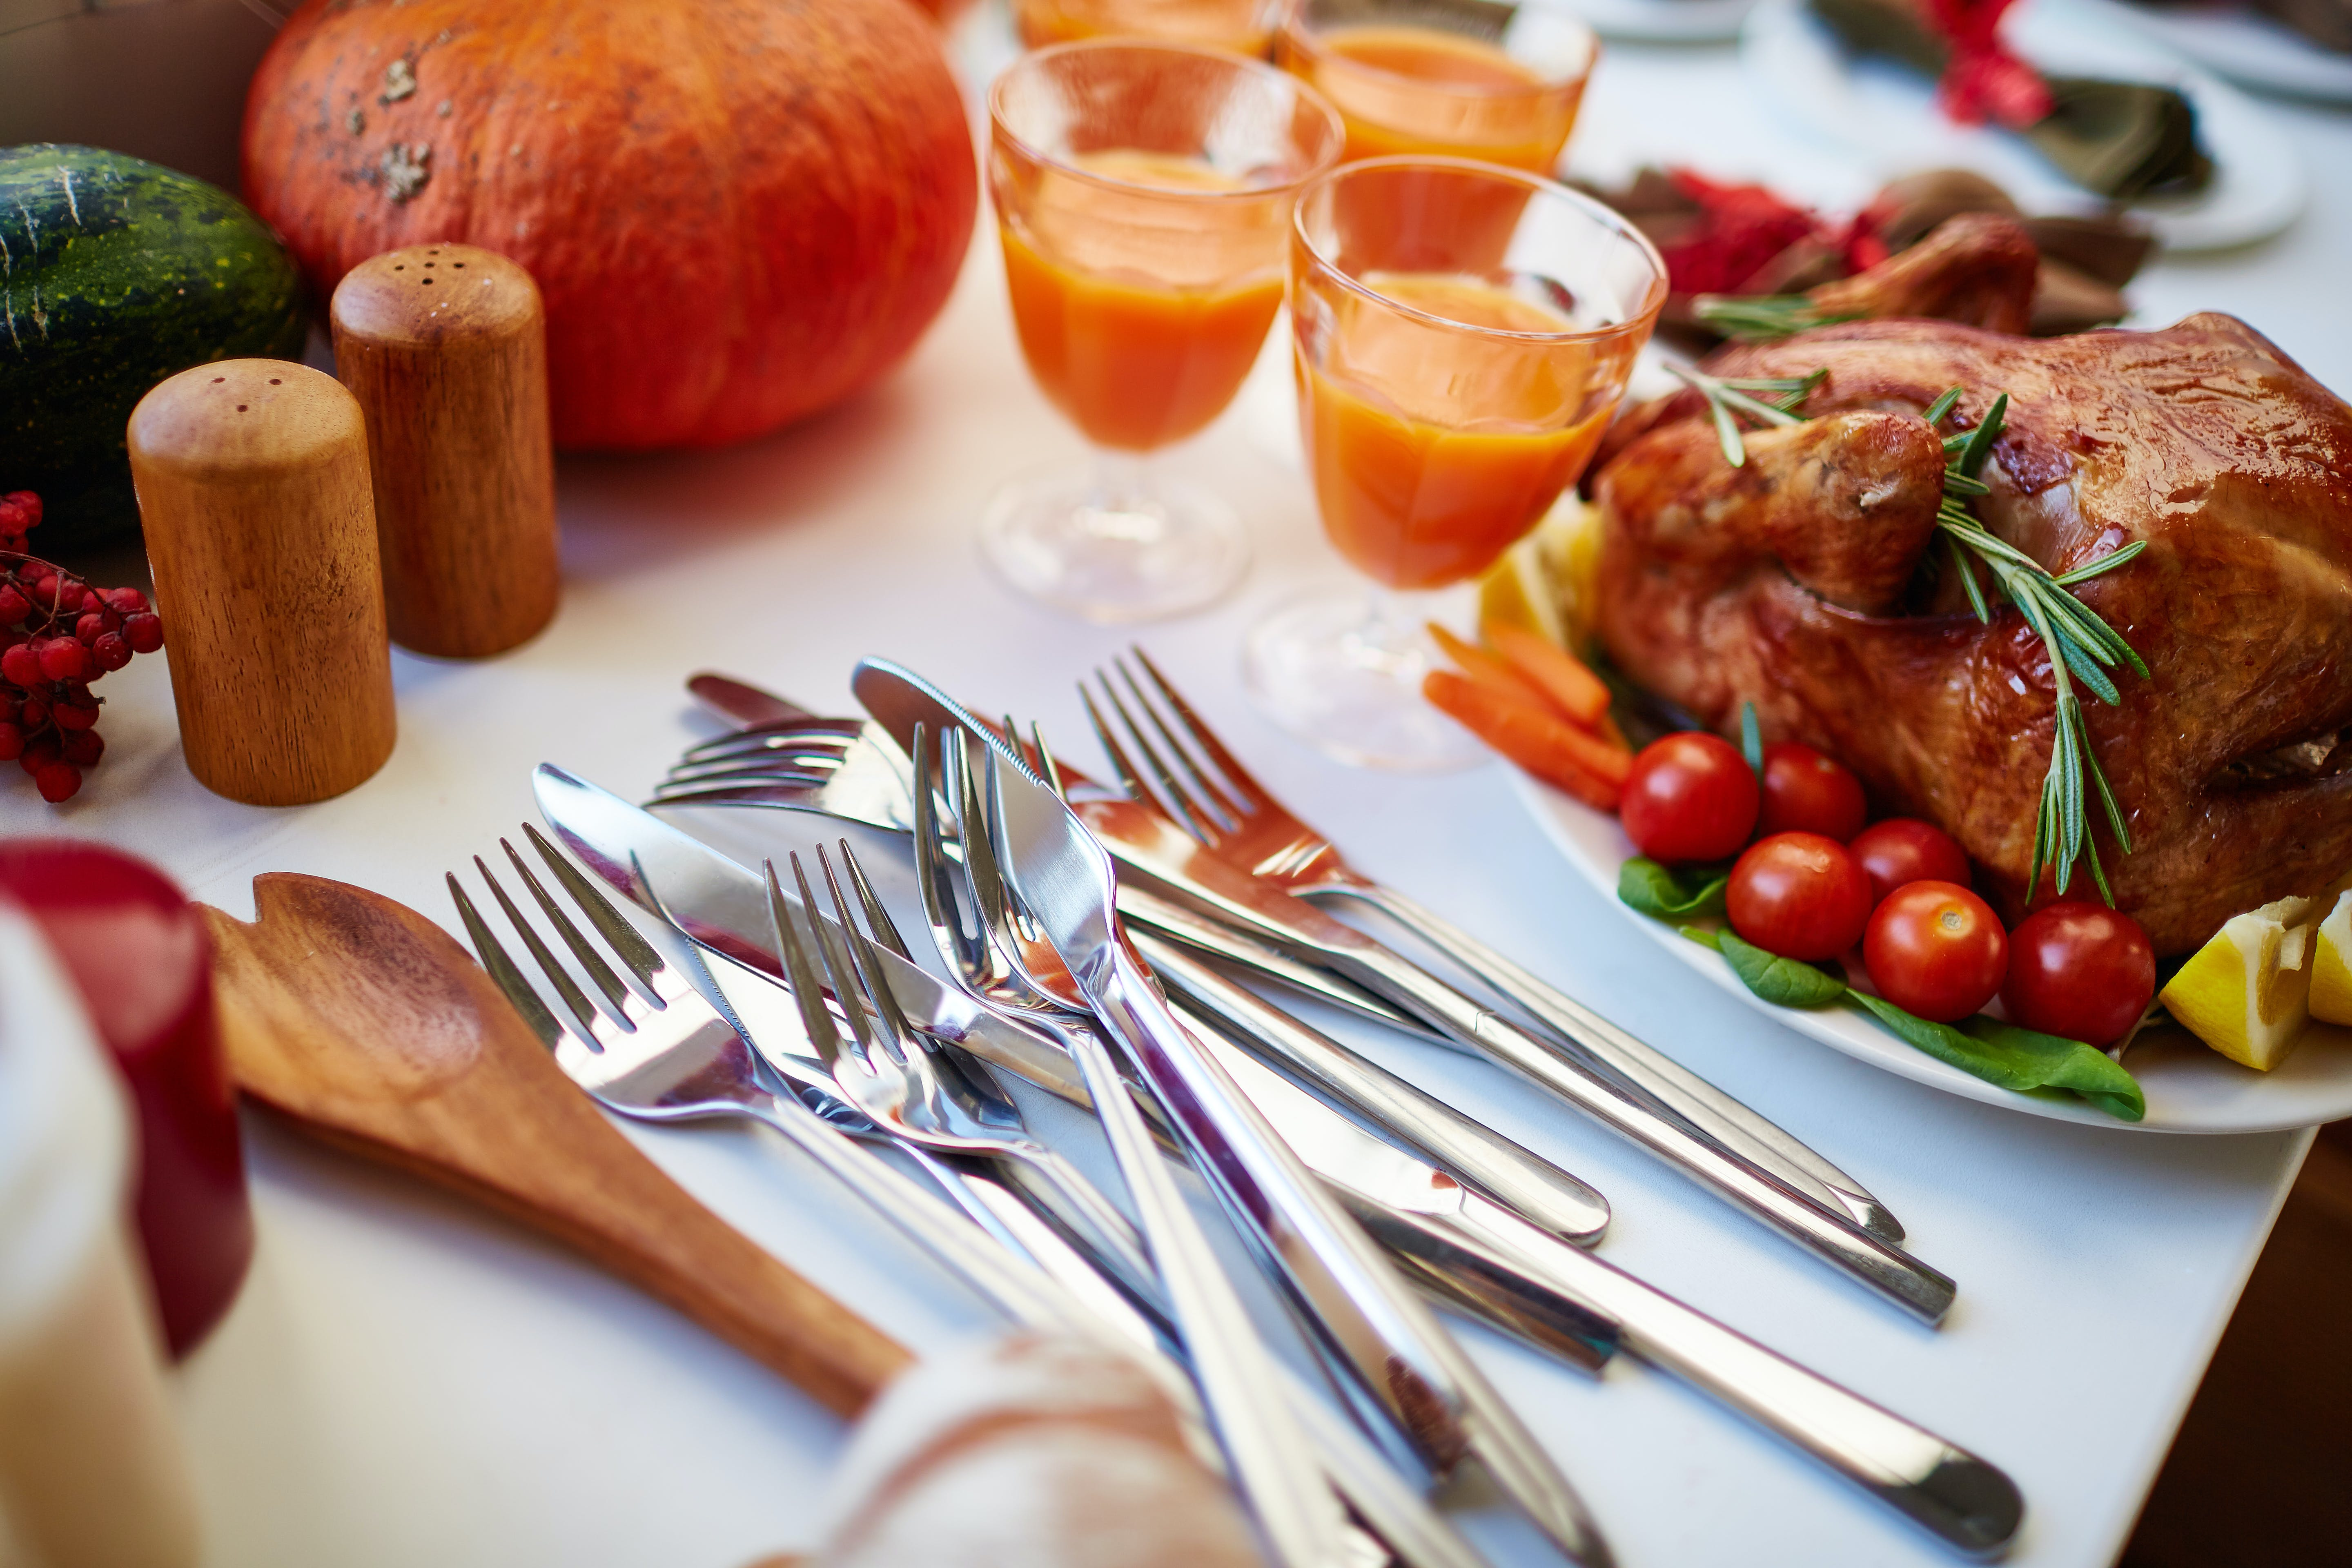 Our Relaxing Thanksgiving Dinner Cruise Is A Unique Way To Give Thanks With Family And Friends Offering A Delicious Buffet Of Traditional Favorites With